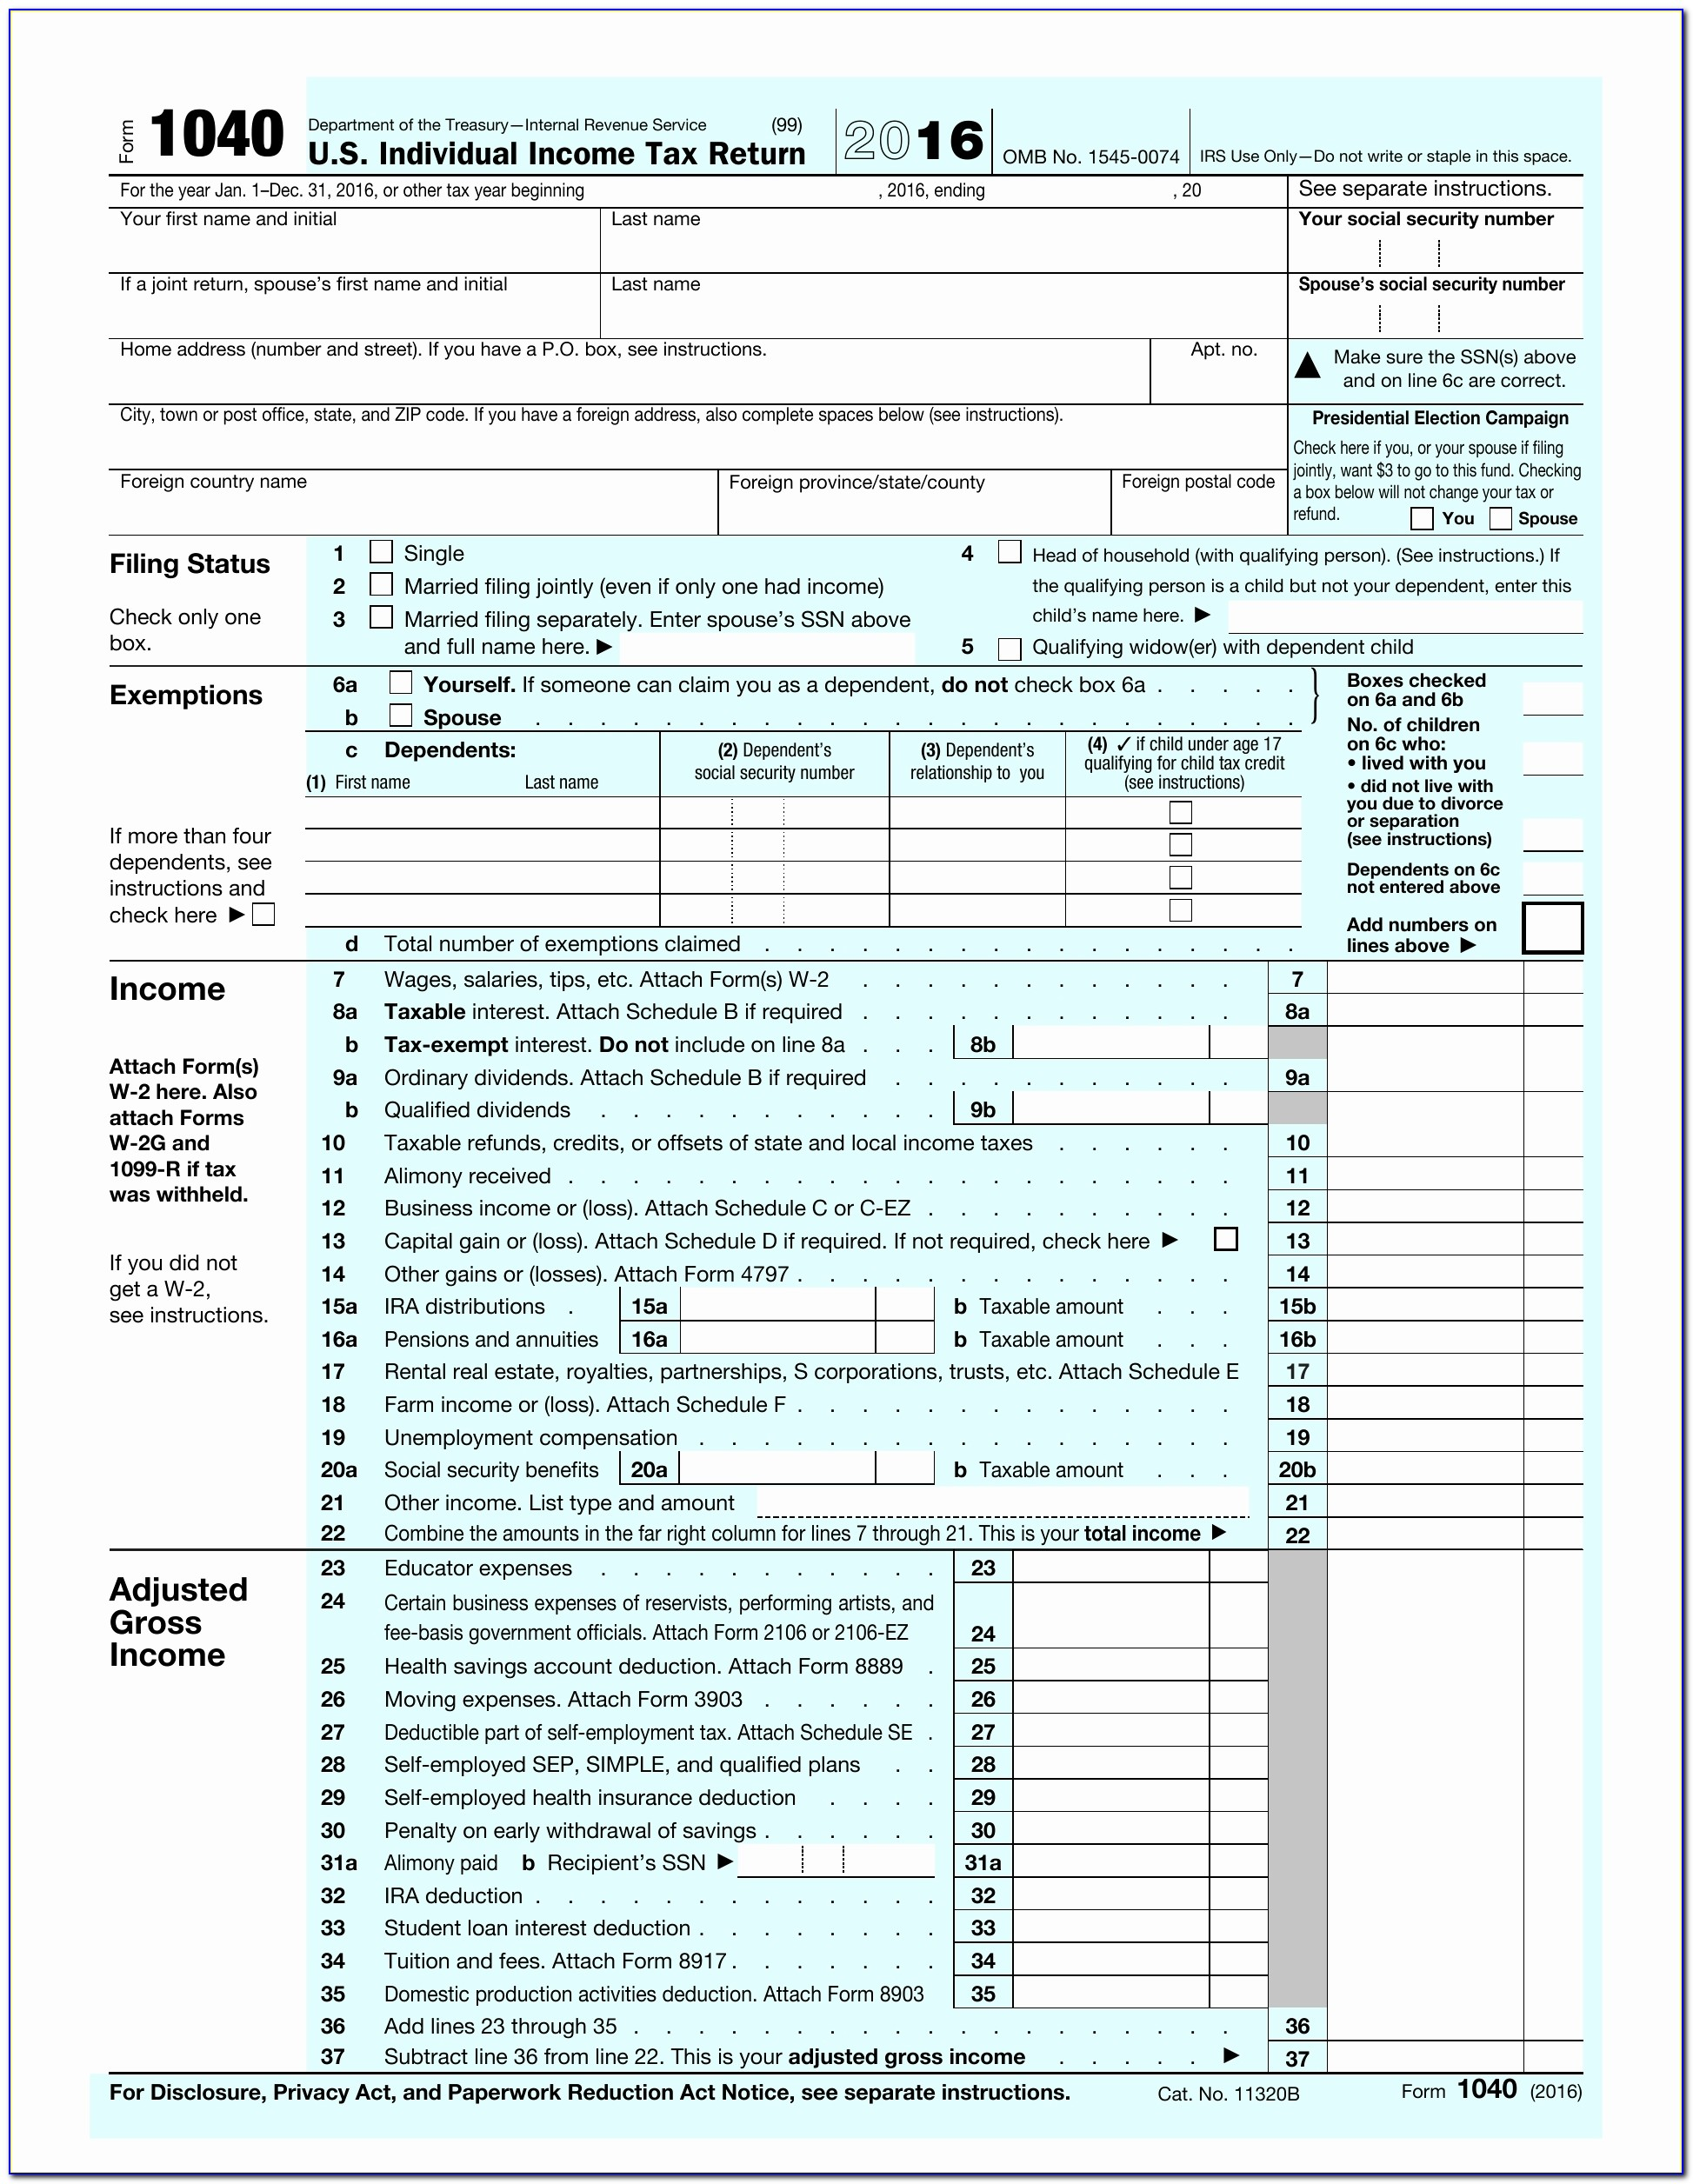 Form Ssa 1099 Fresh Social Security Benefits Statement Form Ssa 1099 Gallery Form